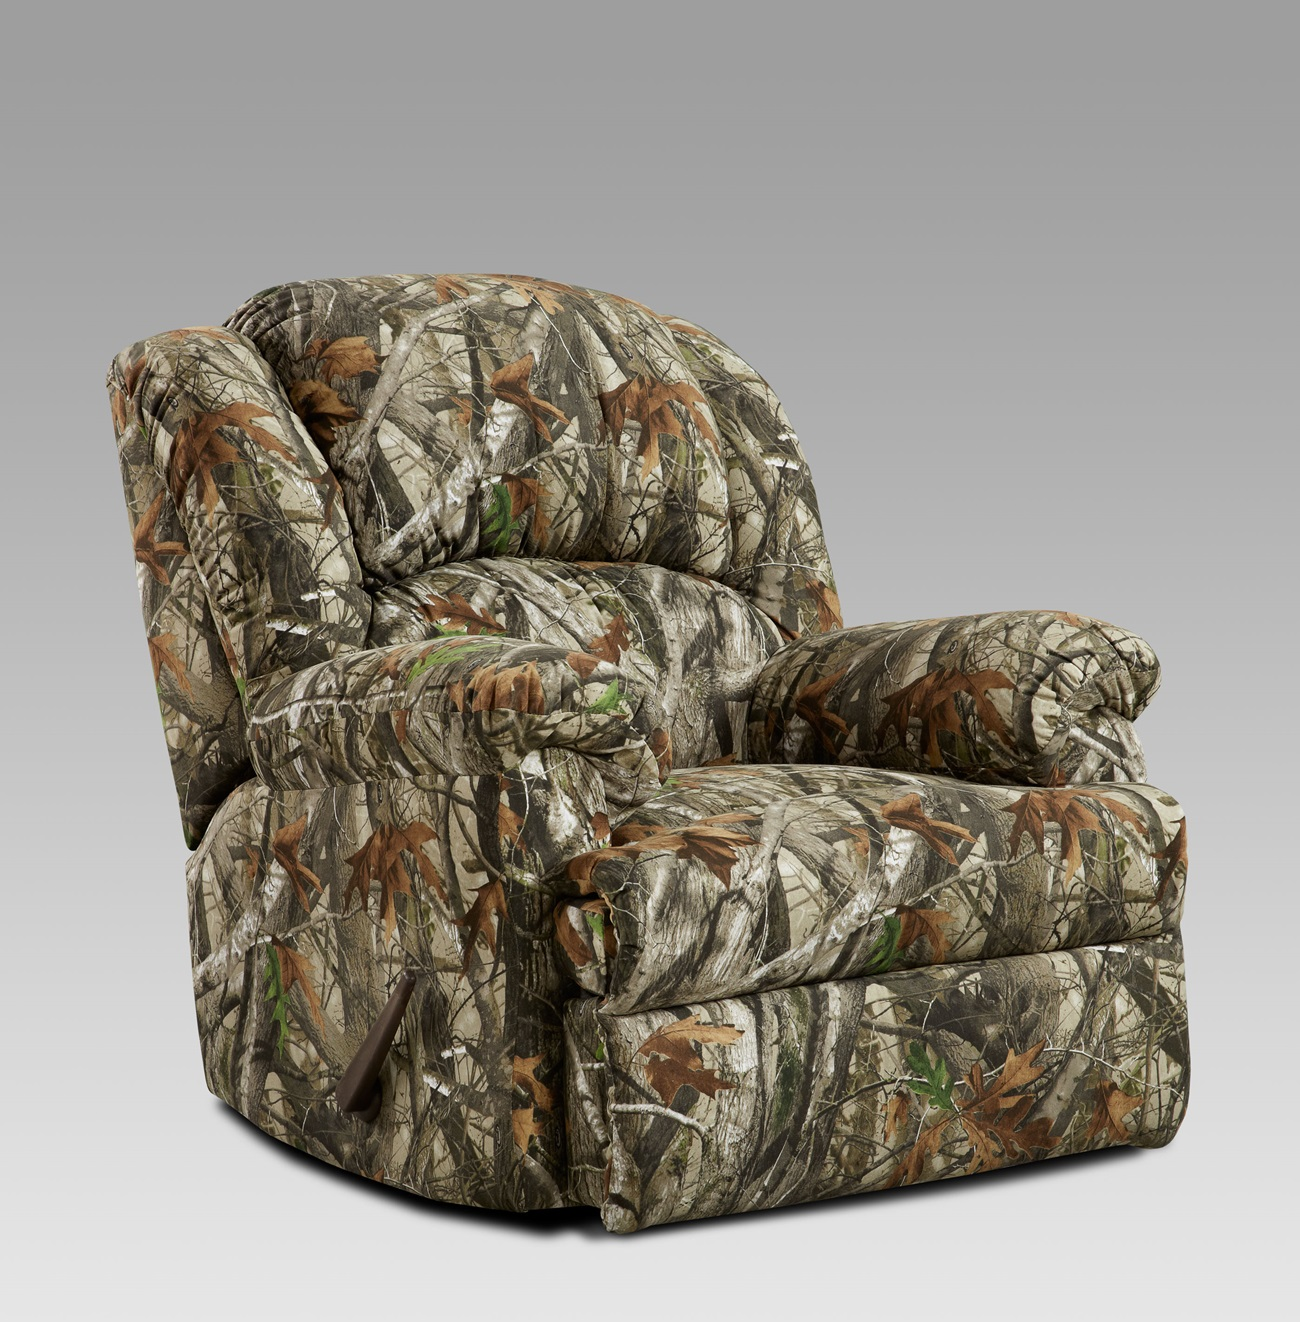 duck hunting chair yogibo hanging mossy oak camouflage sofa and loveseat living